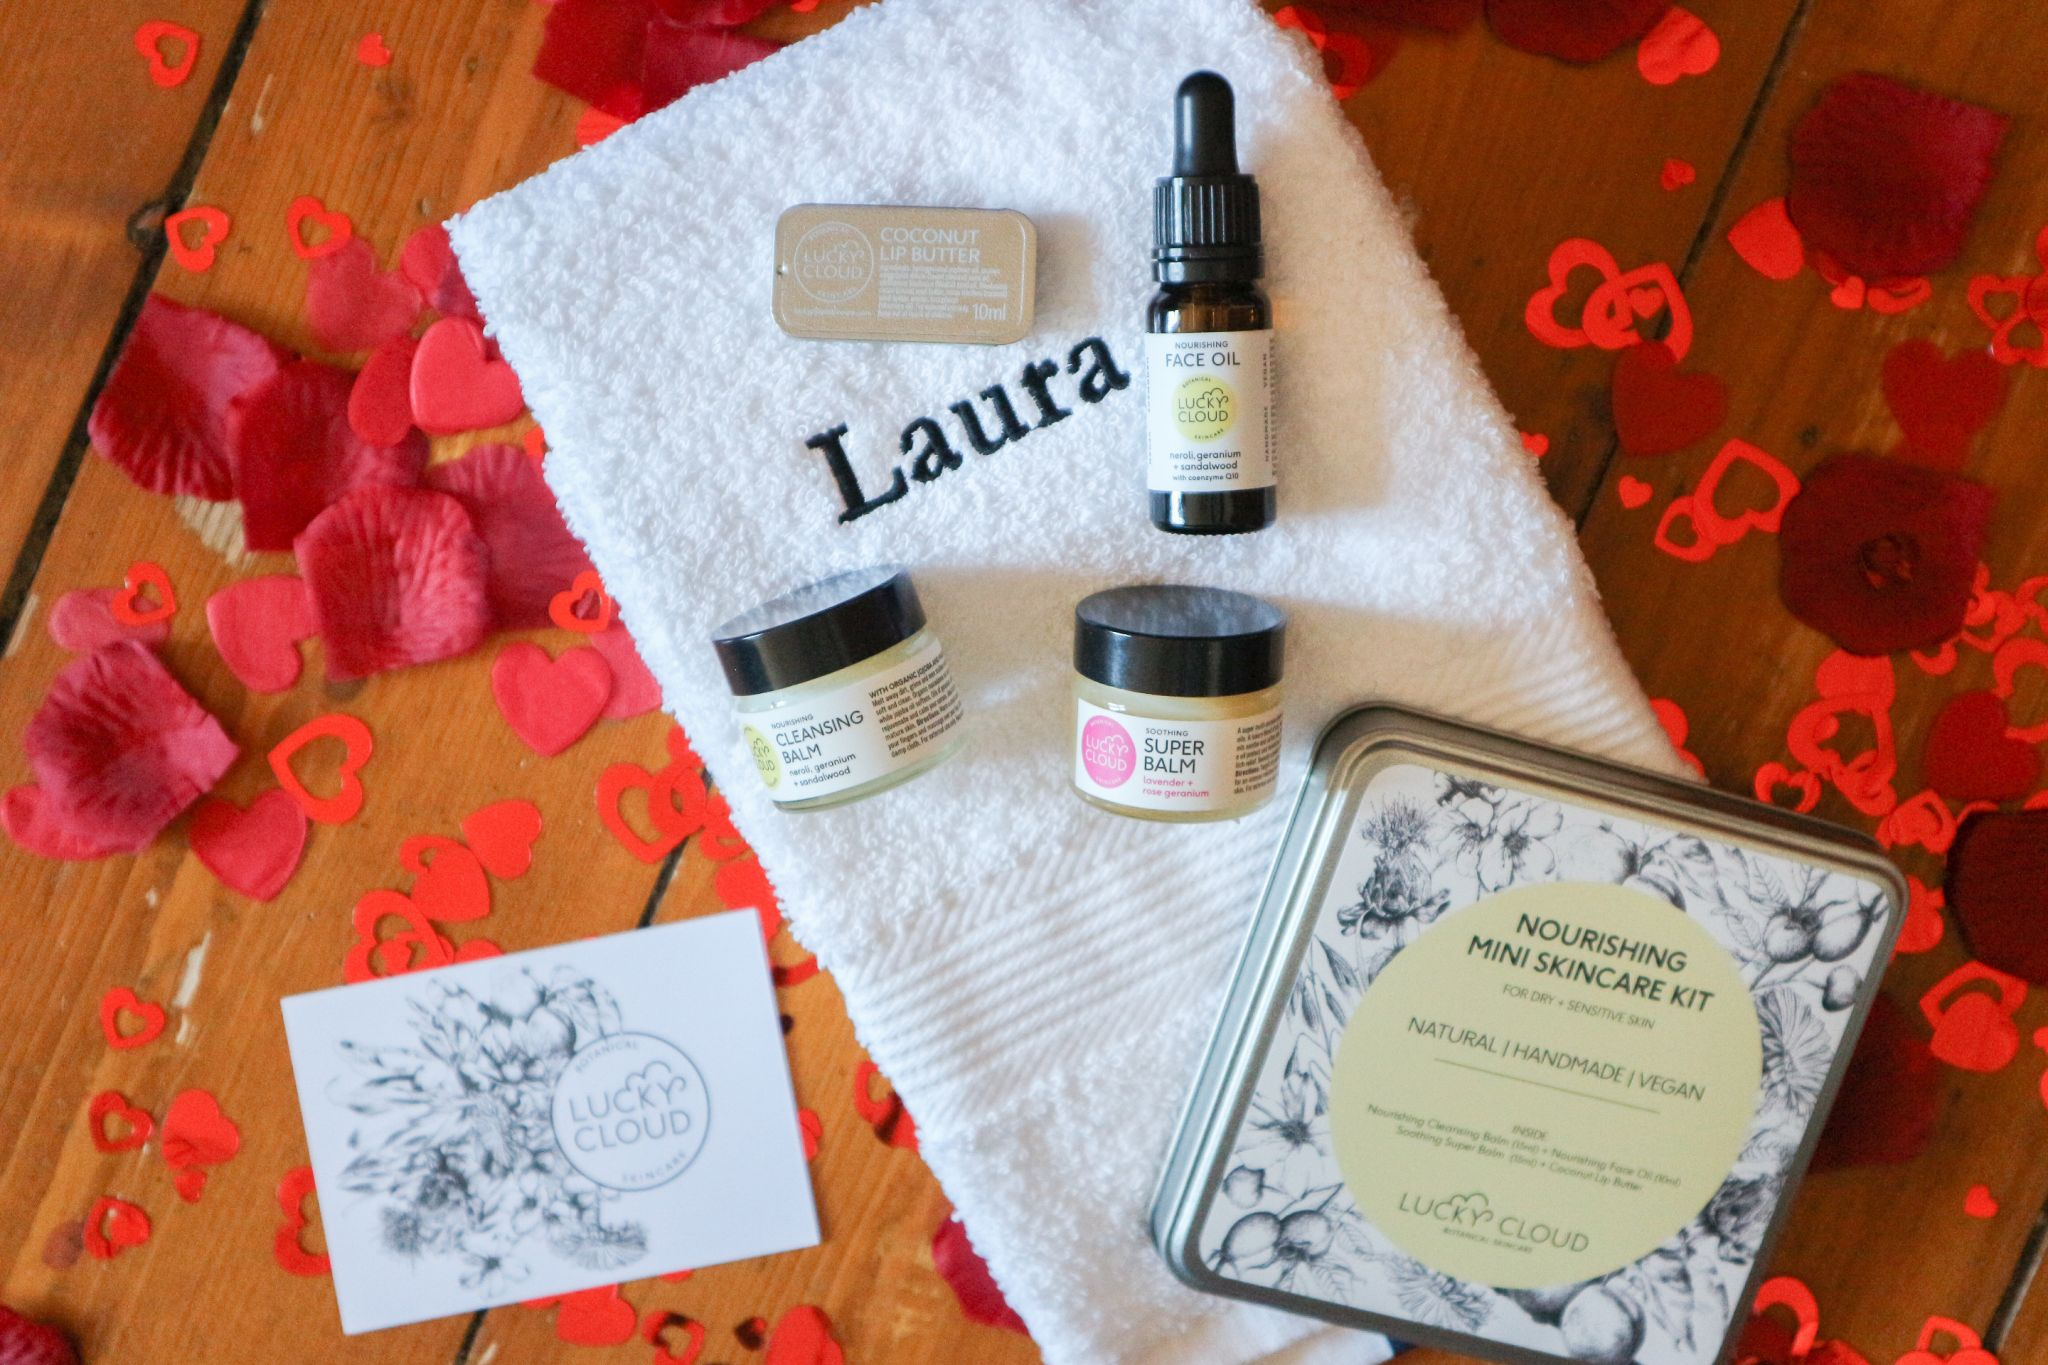 Lucky Cloud Skincare Mini Nourishing Skincare Kit